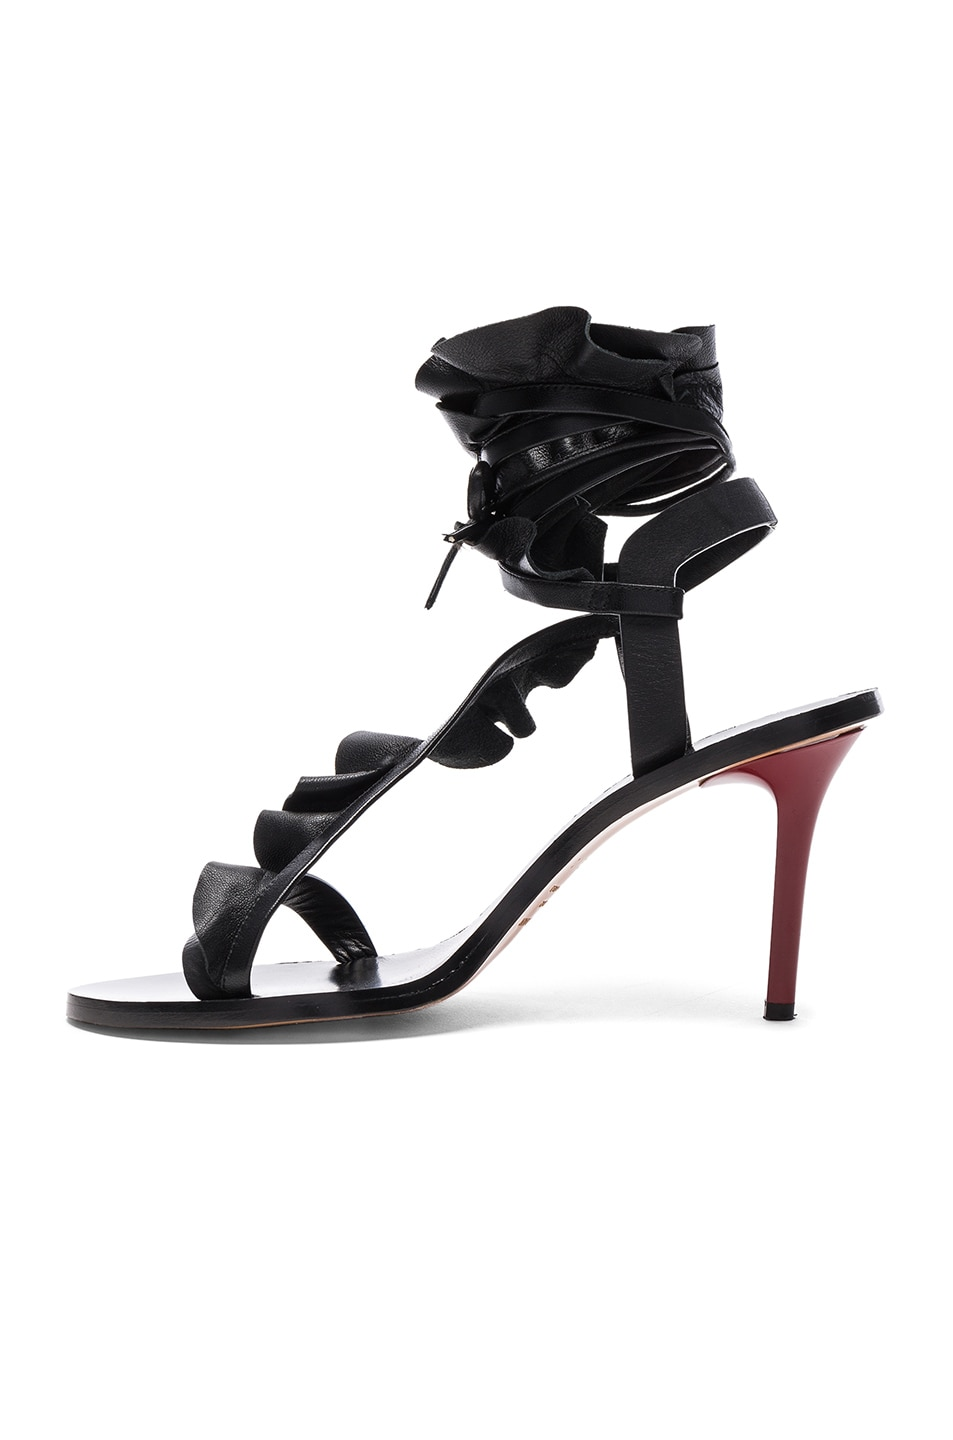 Image 5 of Isabel Marant Leather Ansel Heels in Black